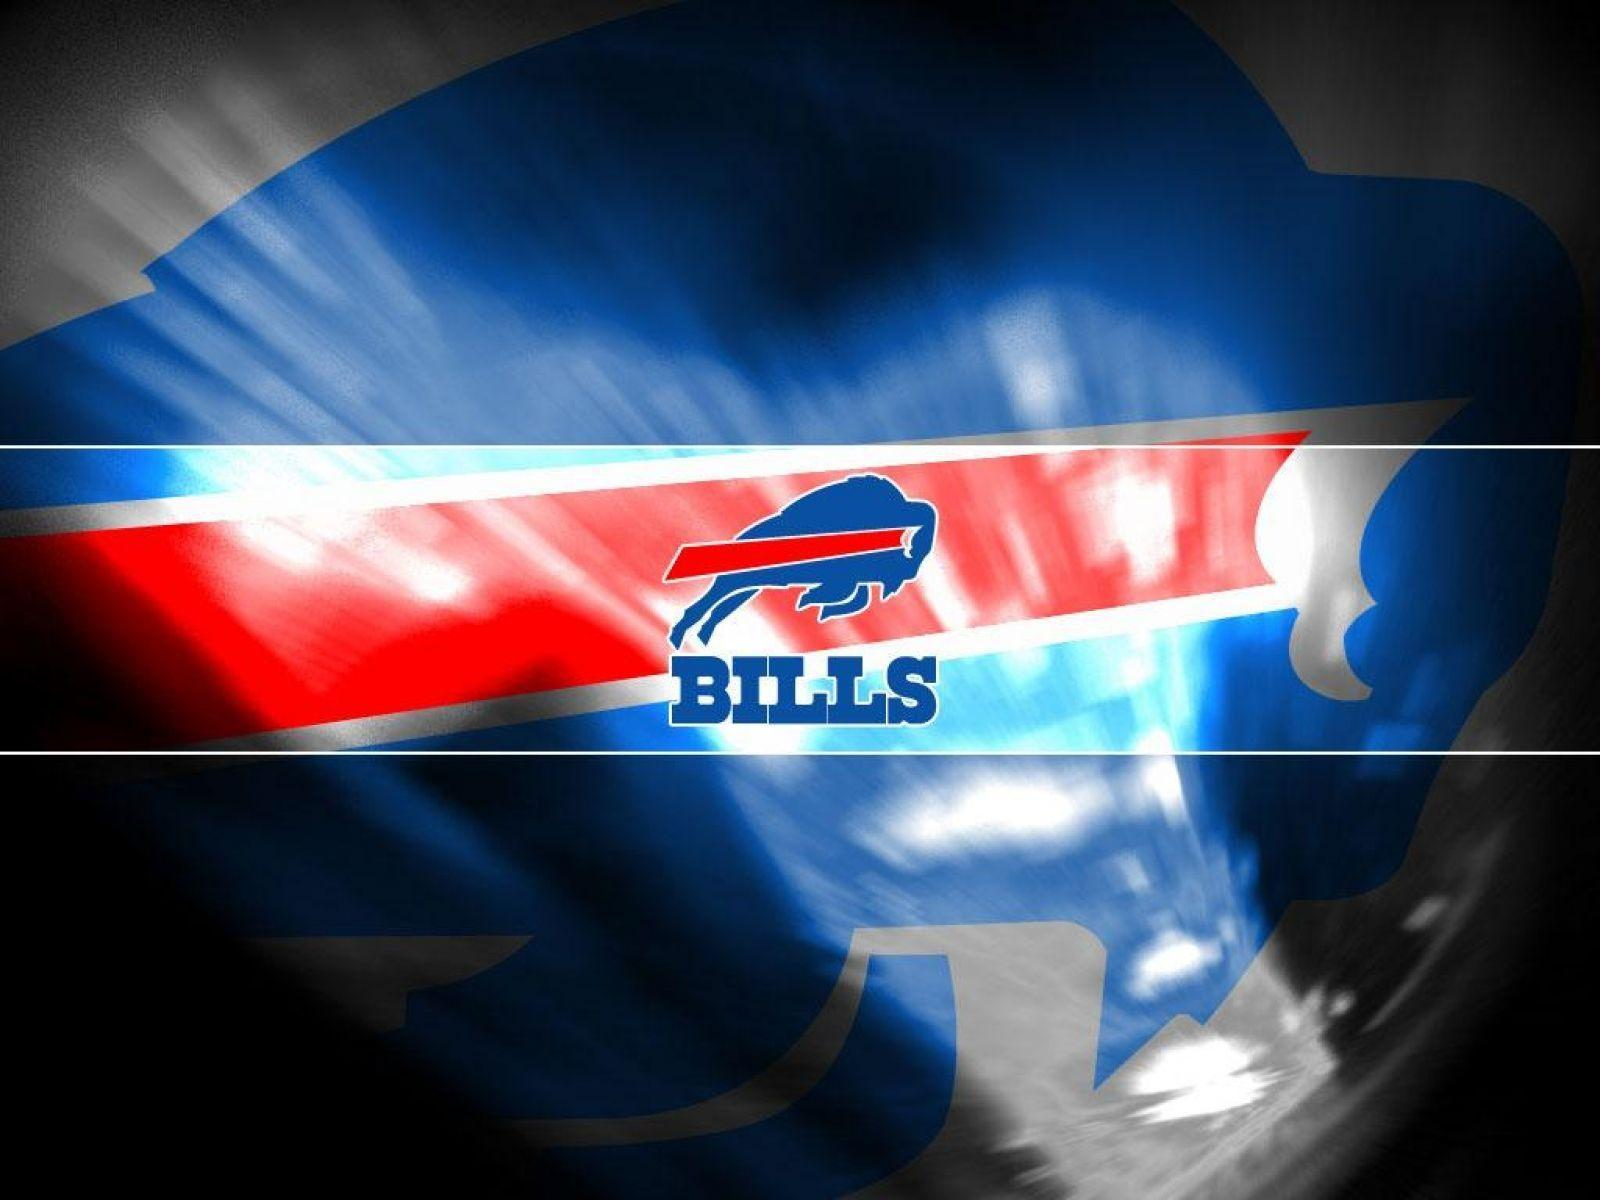 Buffalo Bills Wallpapers at Wallpaperist